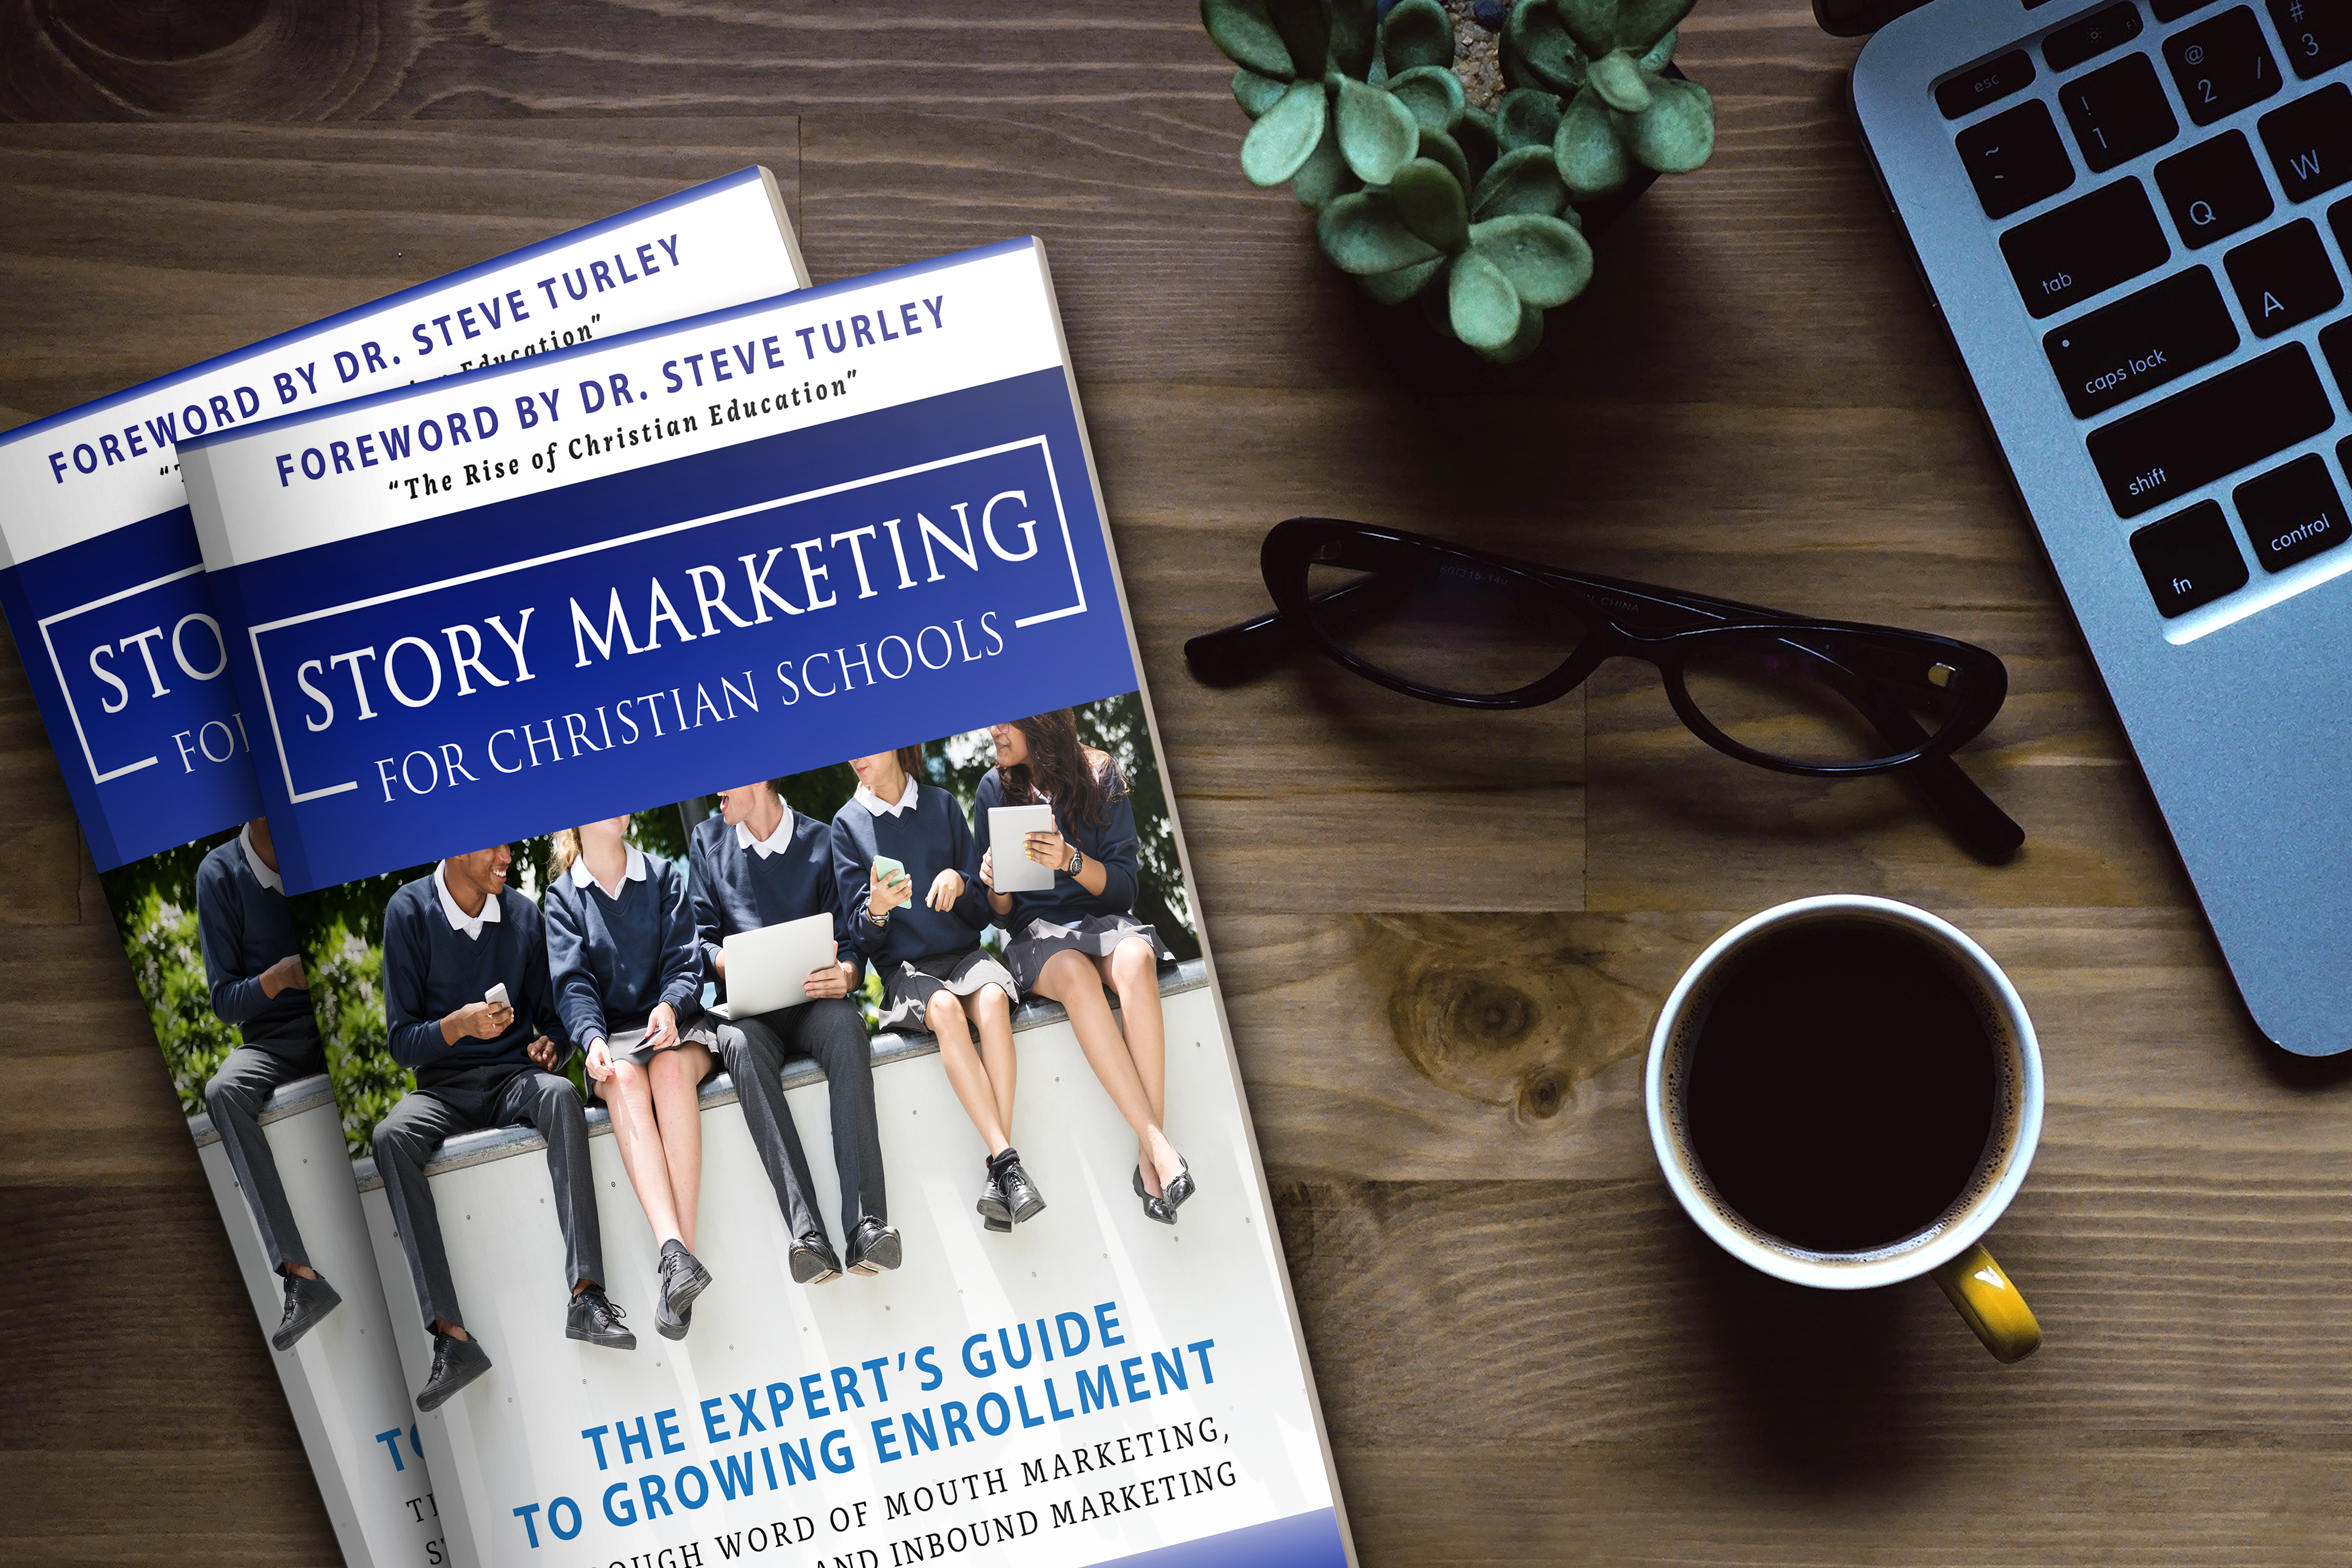 Story Marketing for Christian Schools